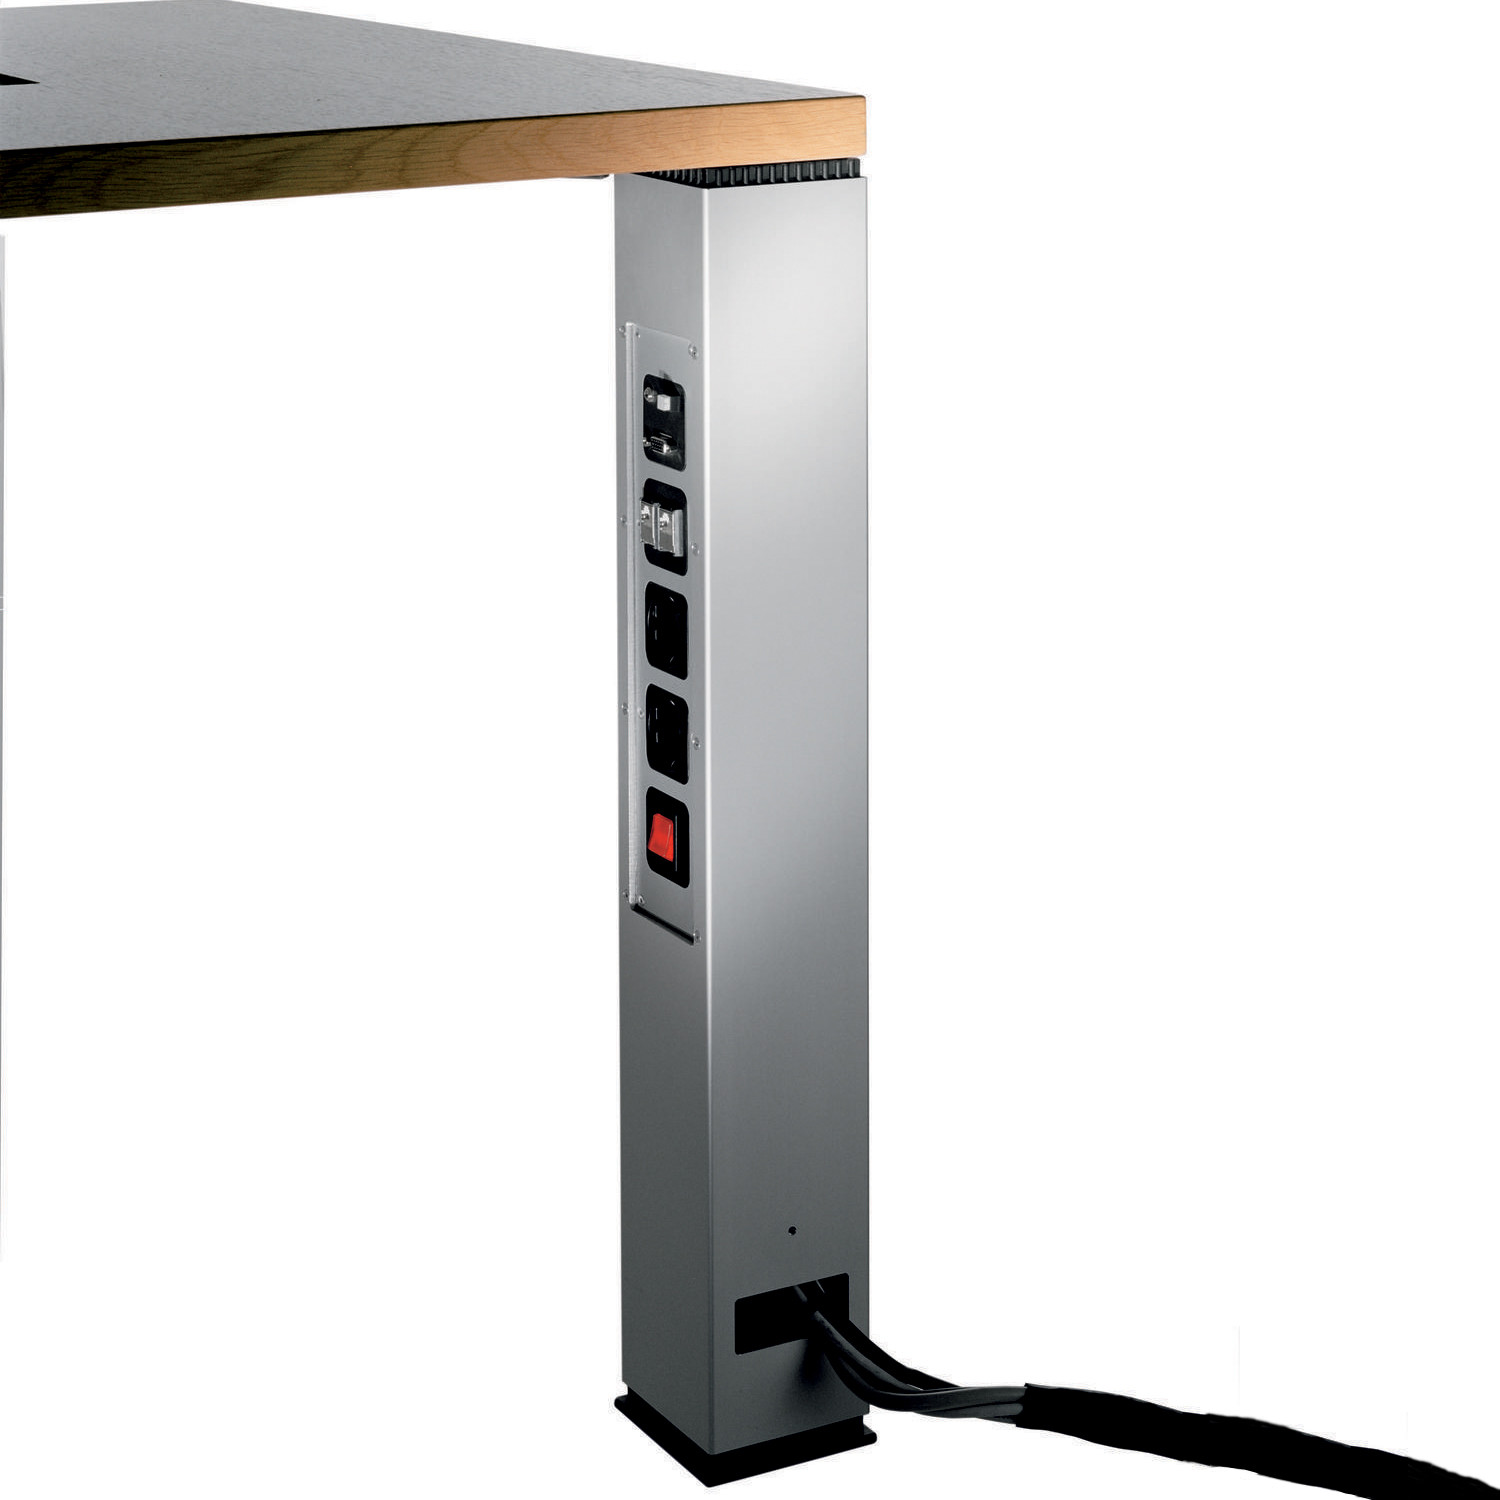 Palette table leg detail with cable management system